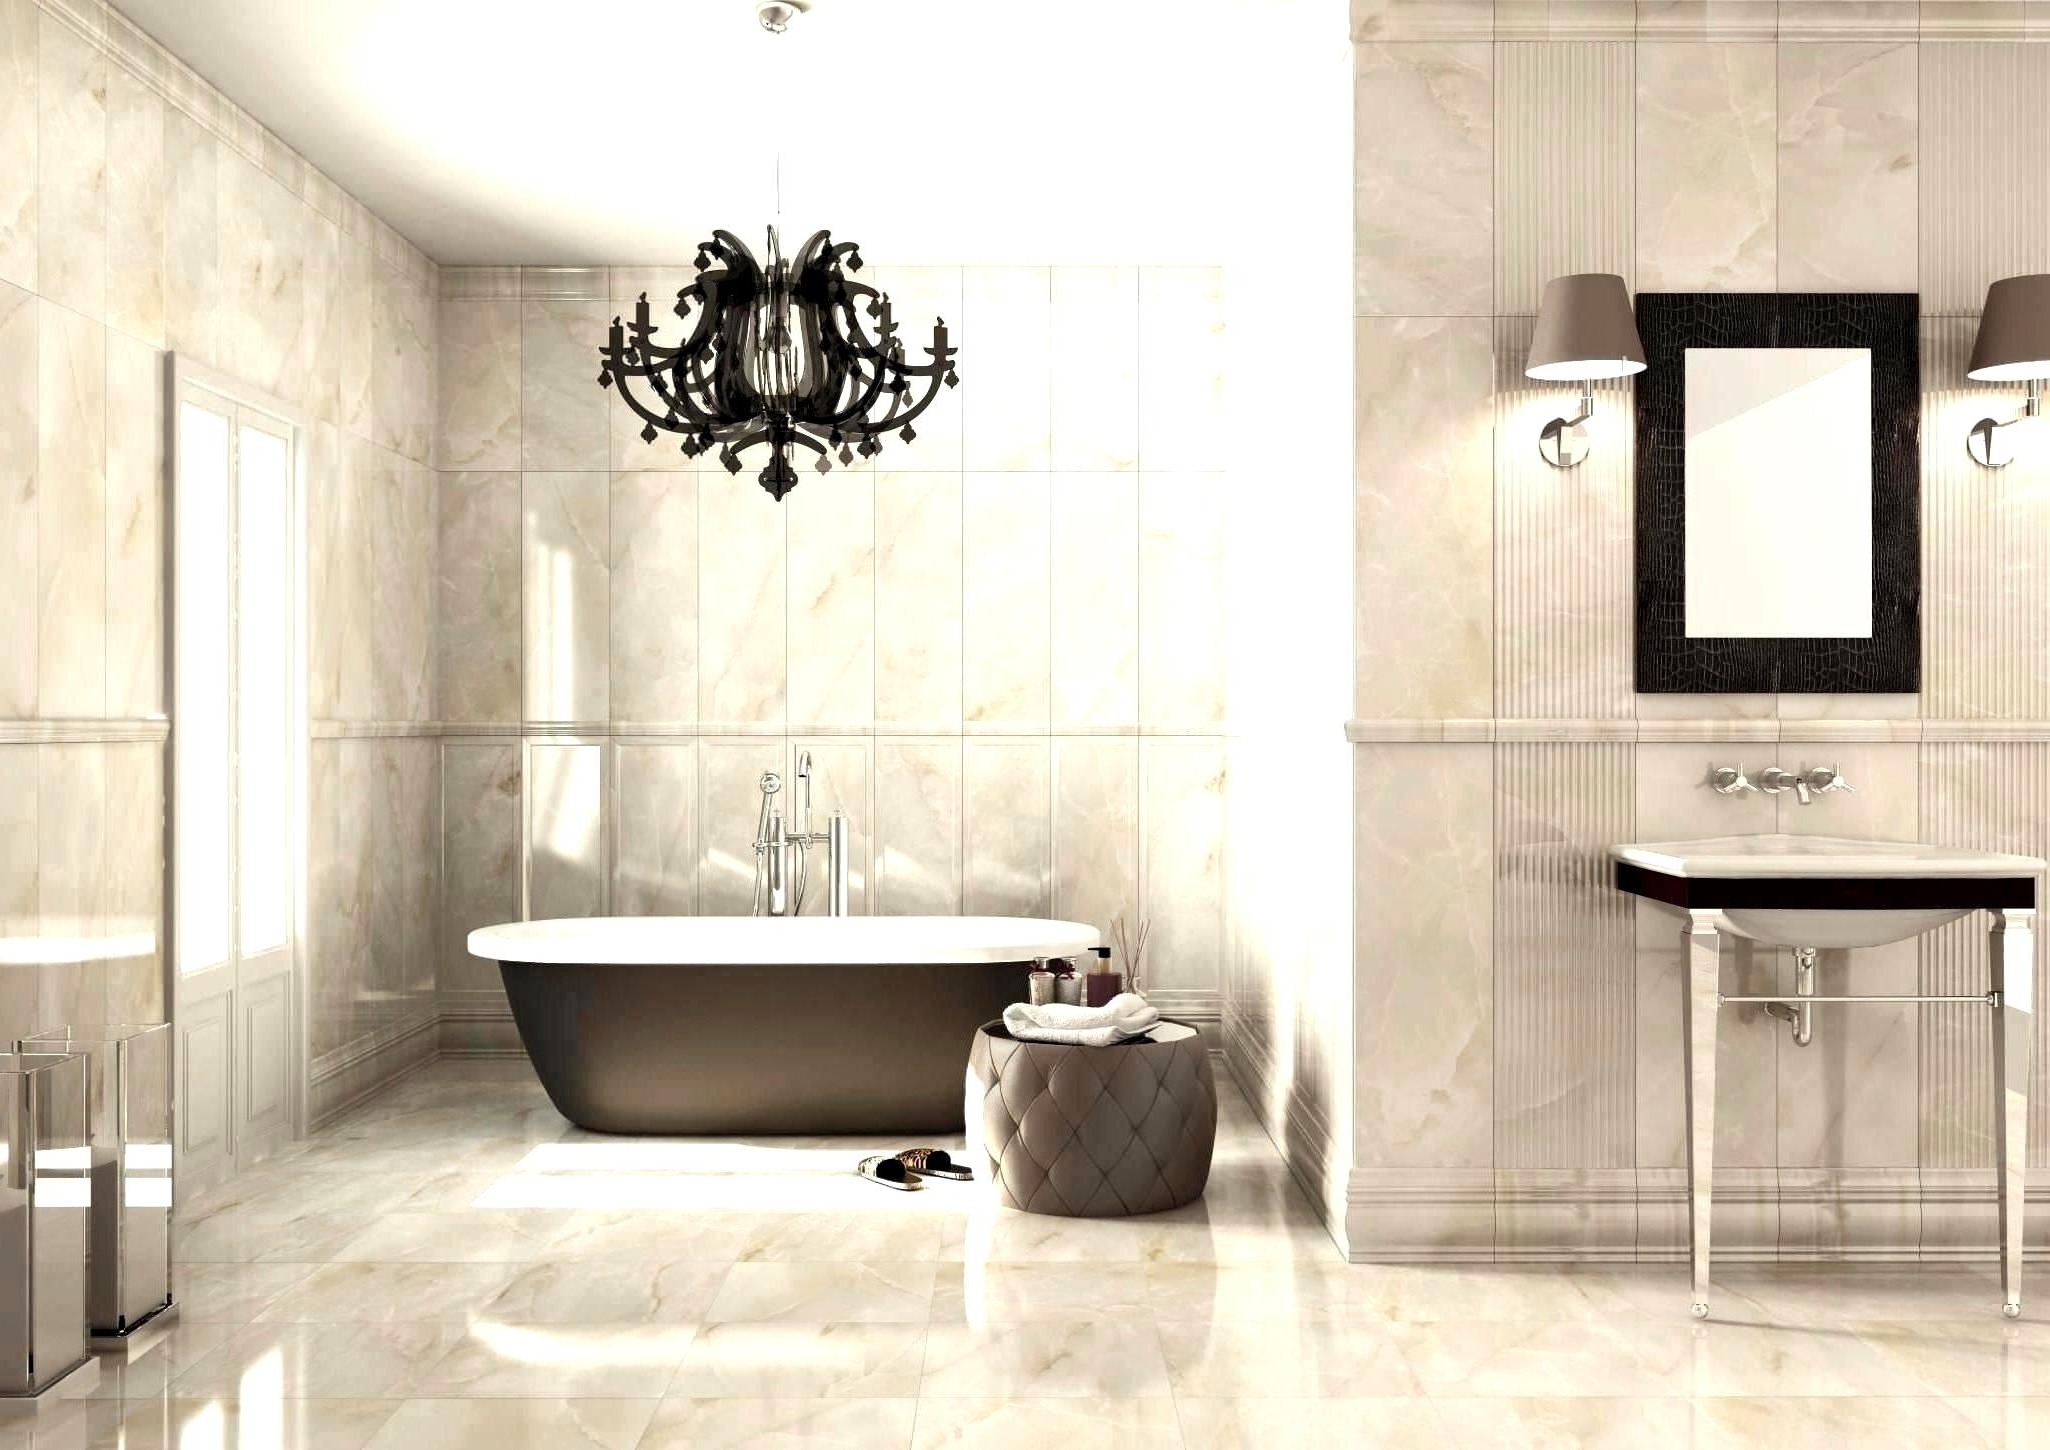 Chandelier In The Bathroom With Regard To Well Known Fabulous Mount Crystal Chandelier Bathroom Ideas Andelier Flush (View 14 of 20)